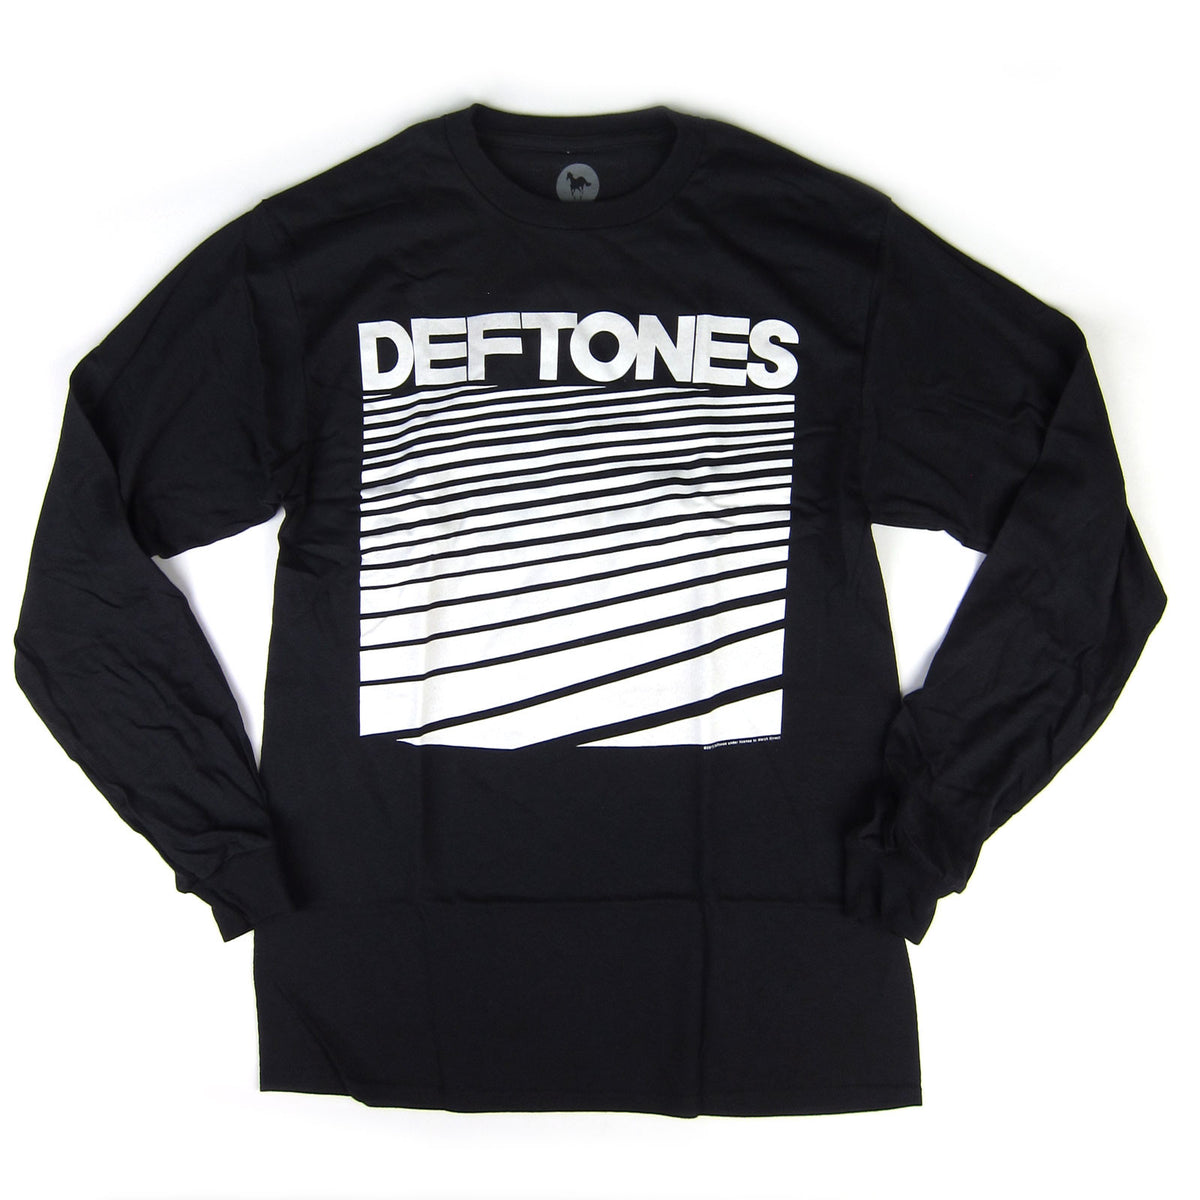 Deftones: Blinds Long Sleeve Shirt - Black